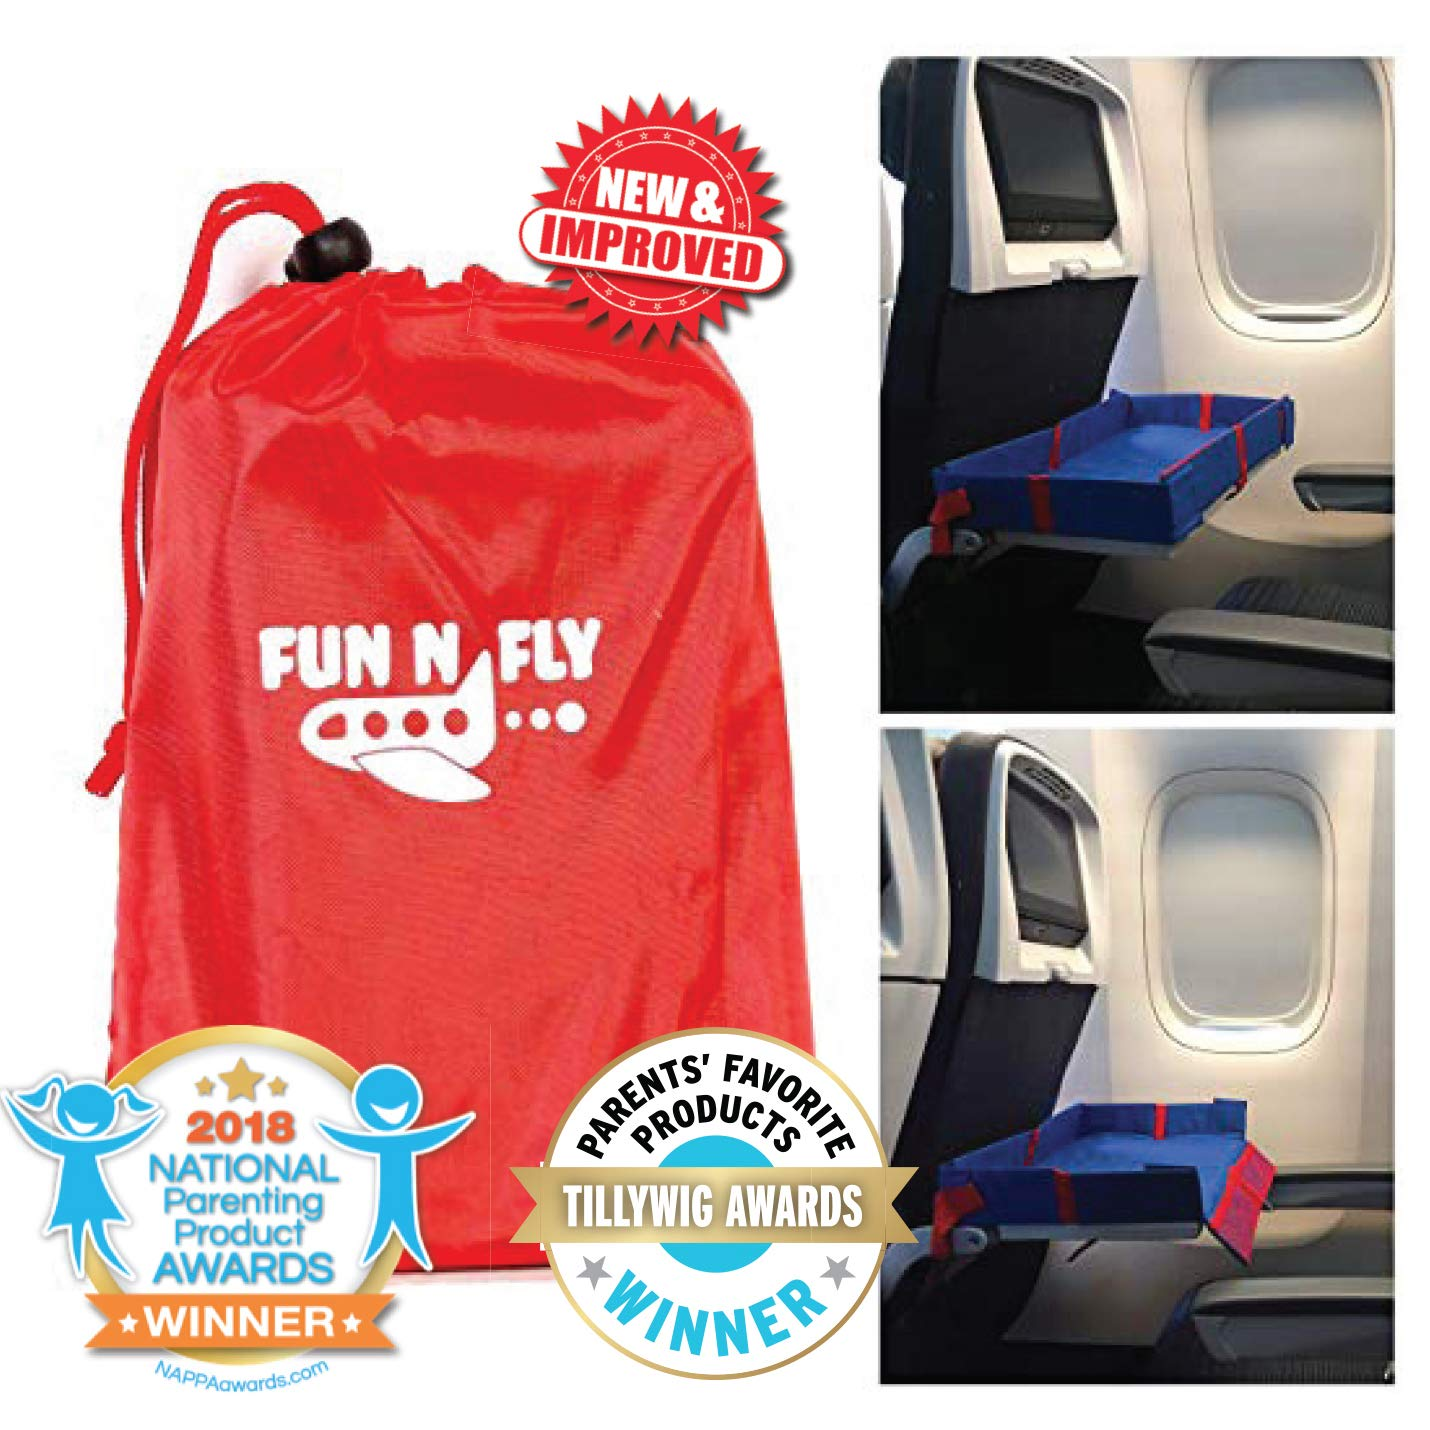 Fun N' Fly Foldable Travel Tray - Blue Red Portable Durable Kids, Toddler, Baby Play Space and Snack Desk for Airplane Travel by FunnFly by Mommy Brain Creatives